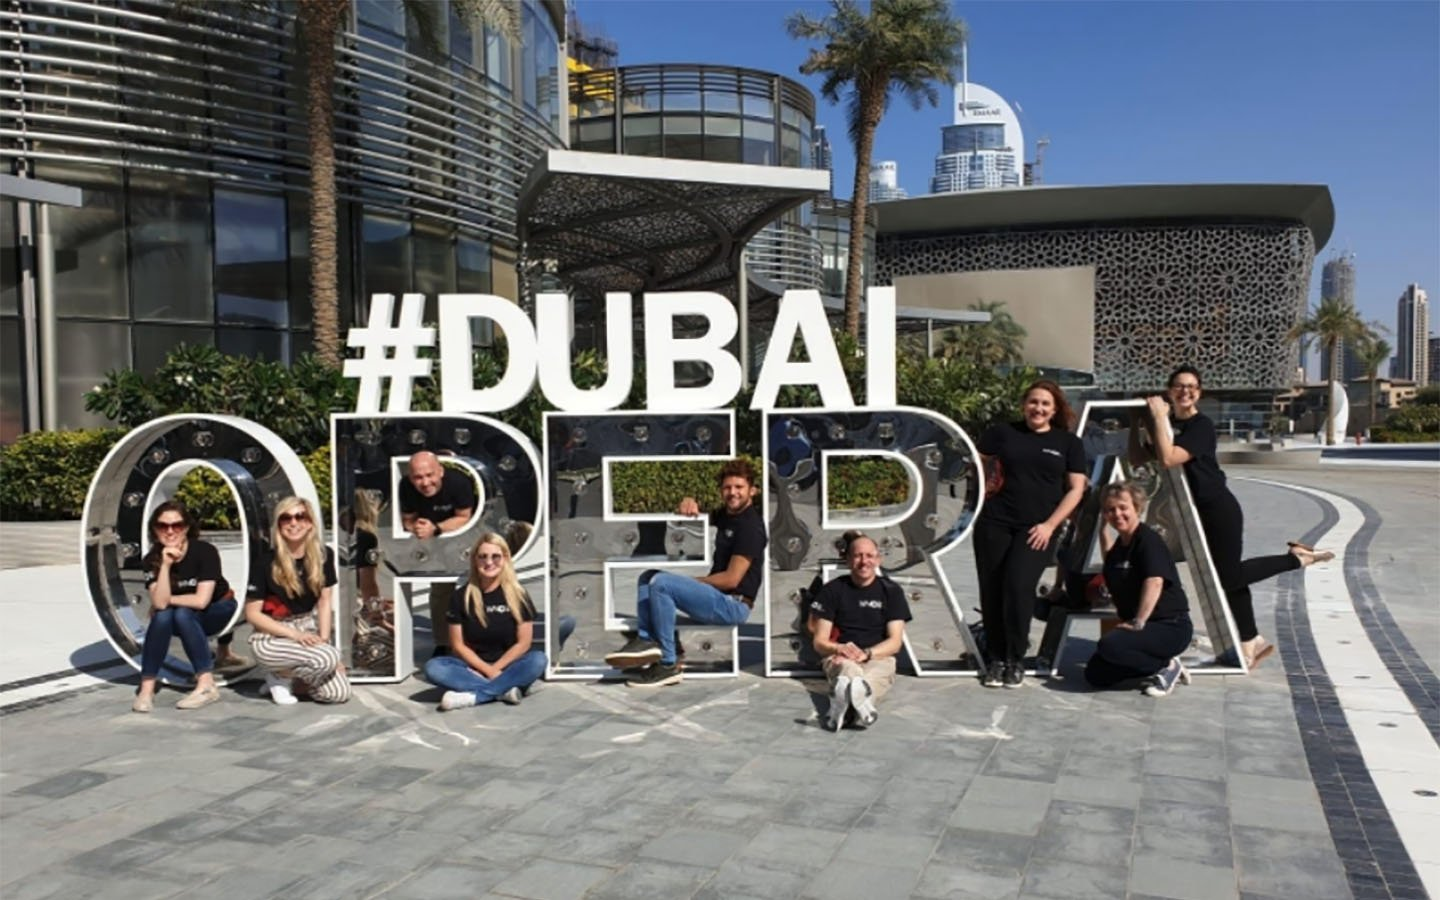 Welsh National Opera team in Dubai